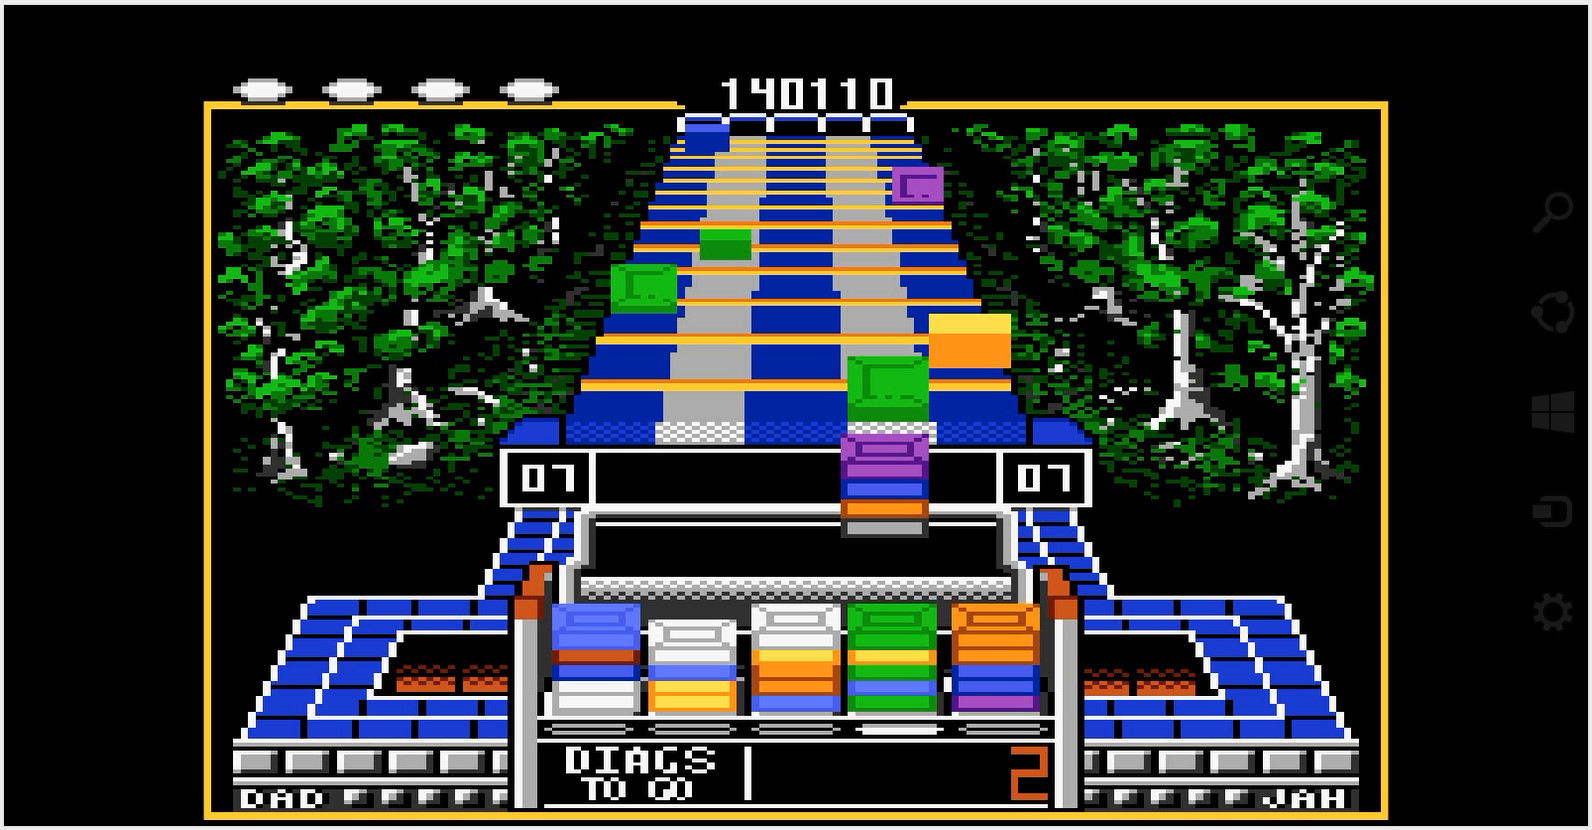 Klax: Easy [Level 06 Start] 140,110 points